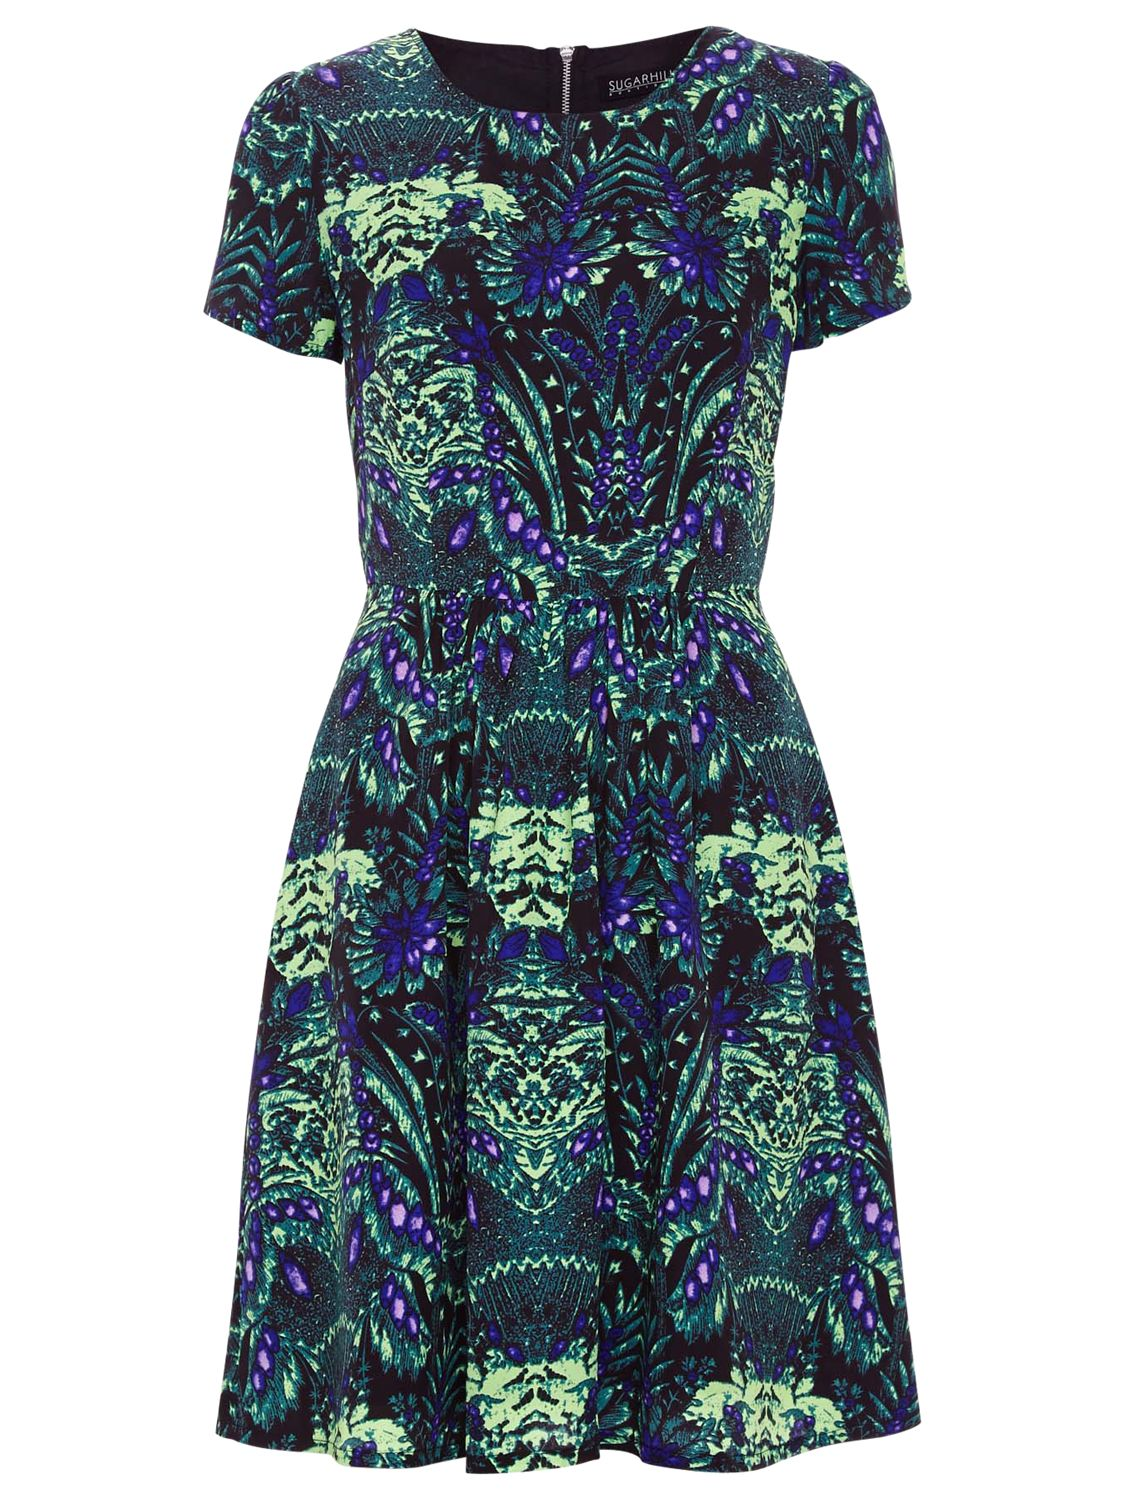 sugarhill boutique nicole dress green, sugarhill, boutique, nicole, dress, green, sugarhill boutique, xl|m, clearance, womenswear offers, womens dresses offers, women, womens dresses, special offers, 1755527